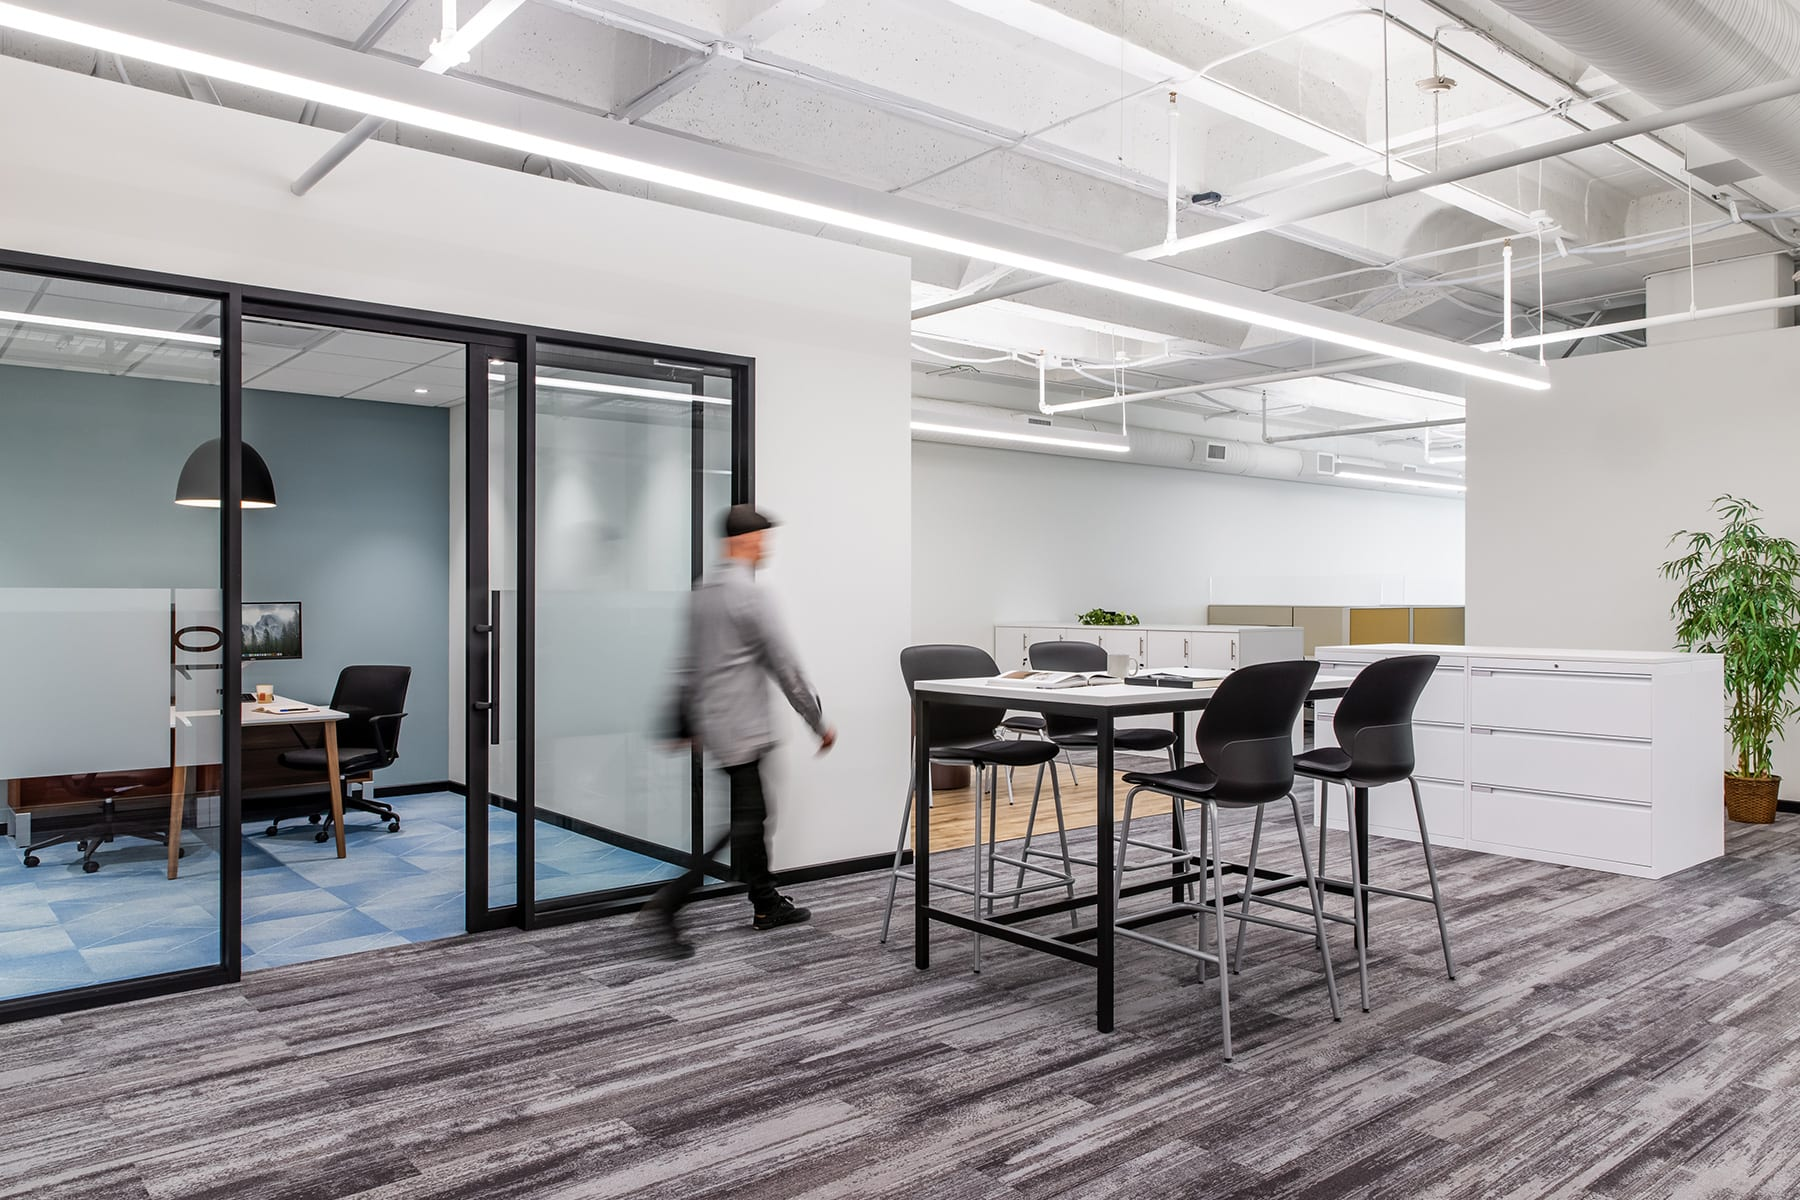 Construction Management Services for GHD's office fitout completed with glazing partition, new lighting, carpets and sound masking